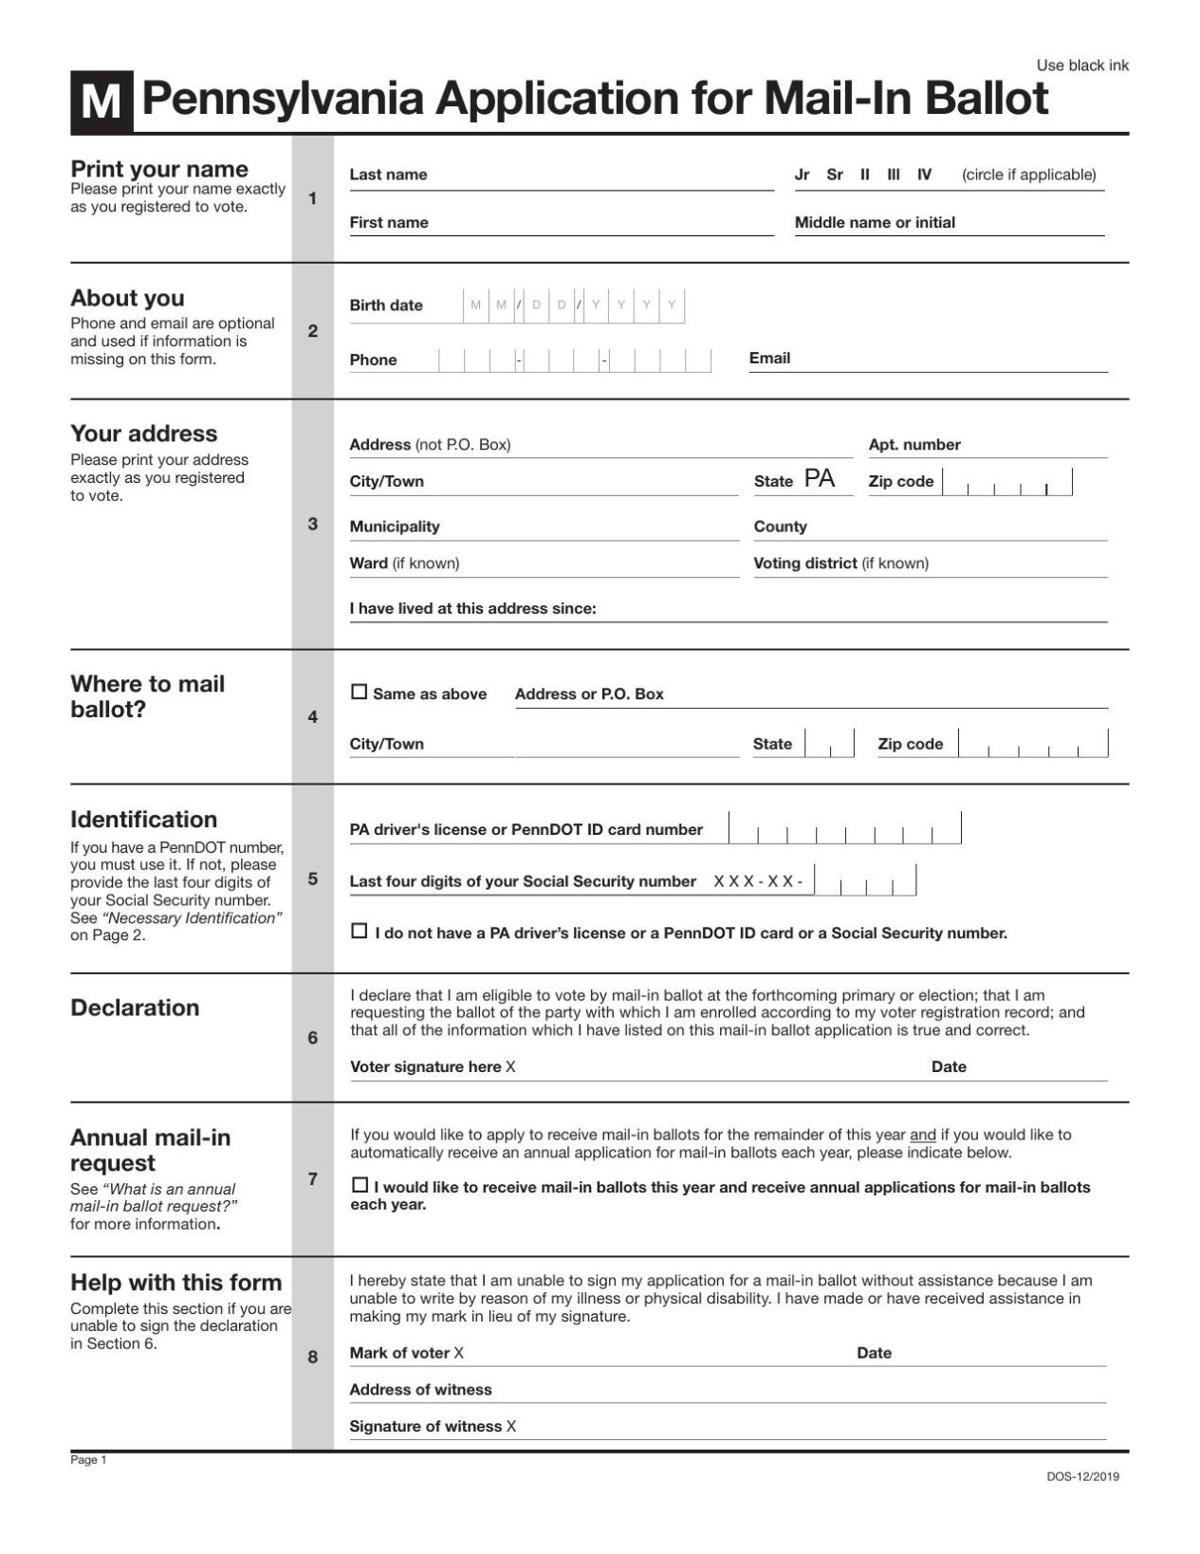 Application for mail-in ballot